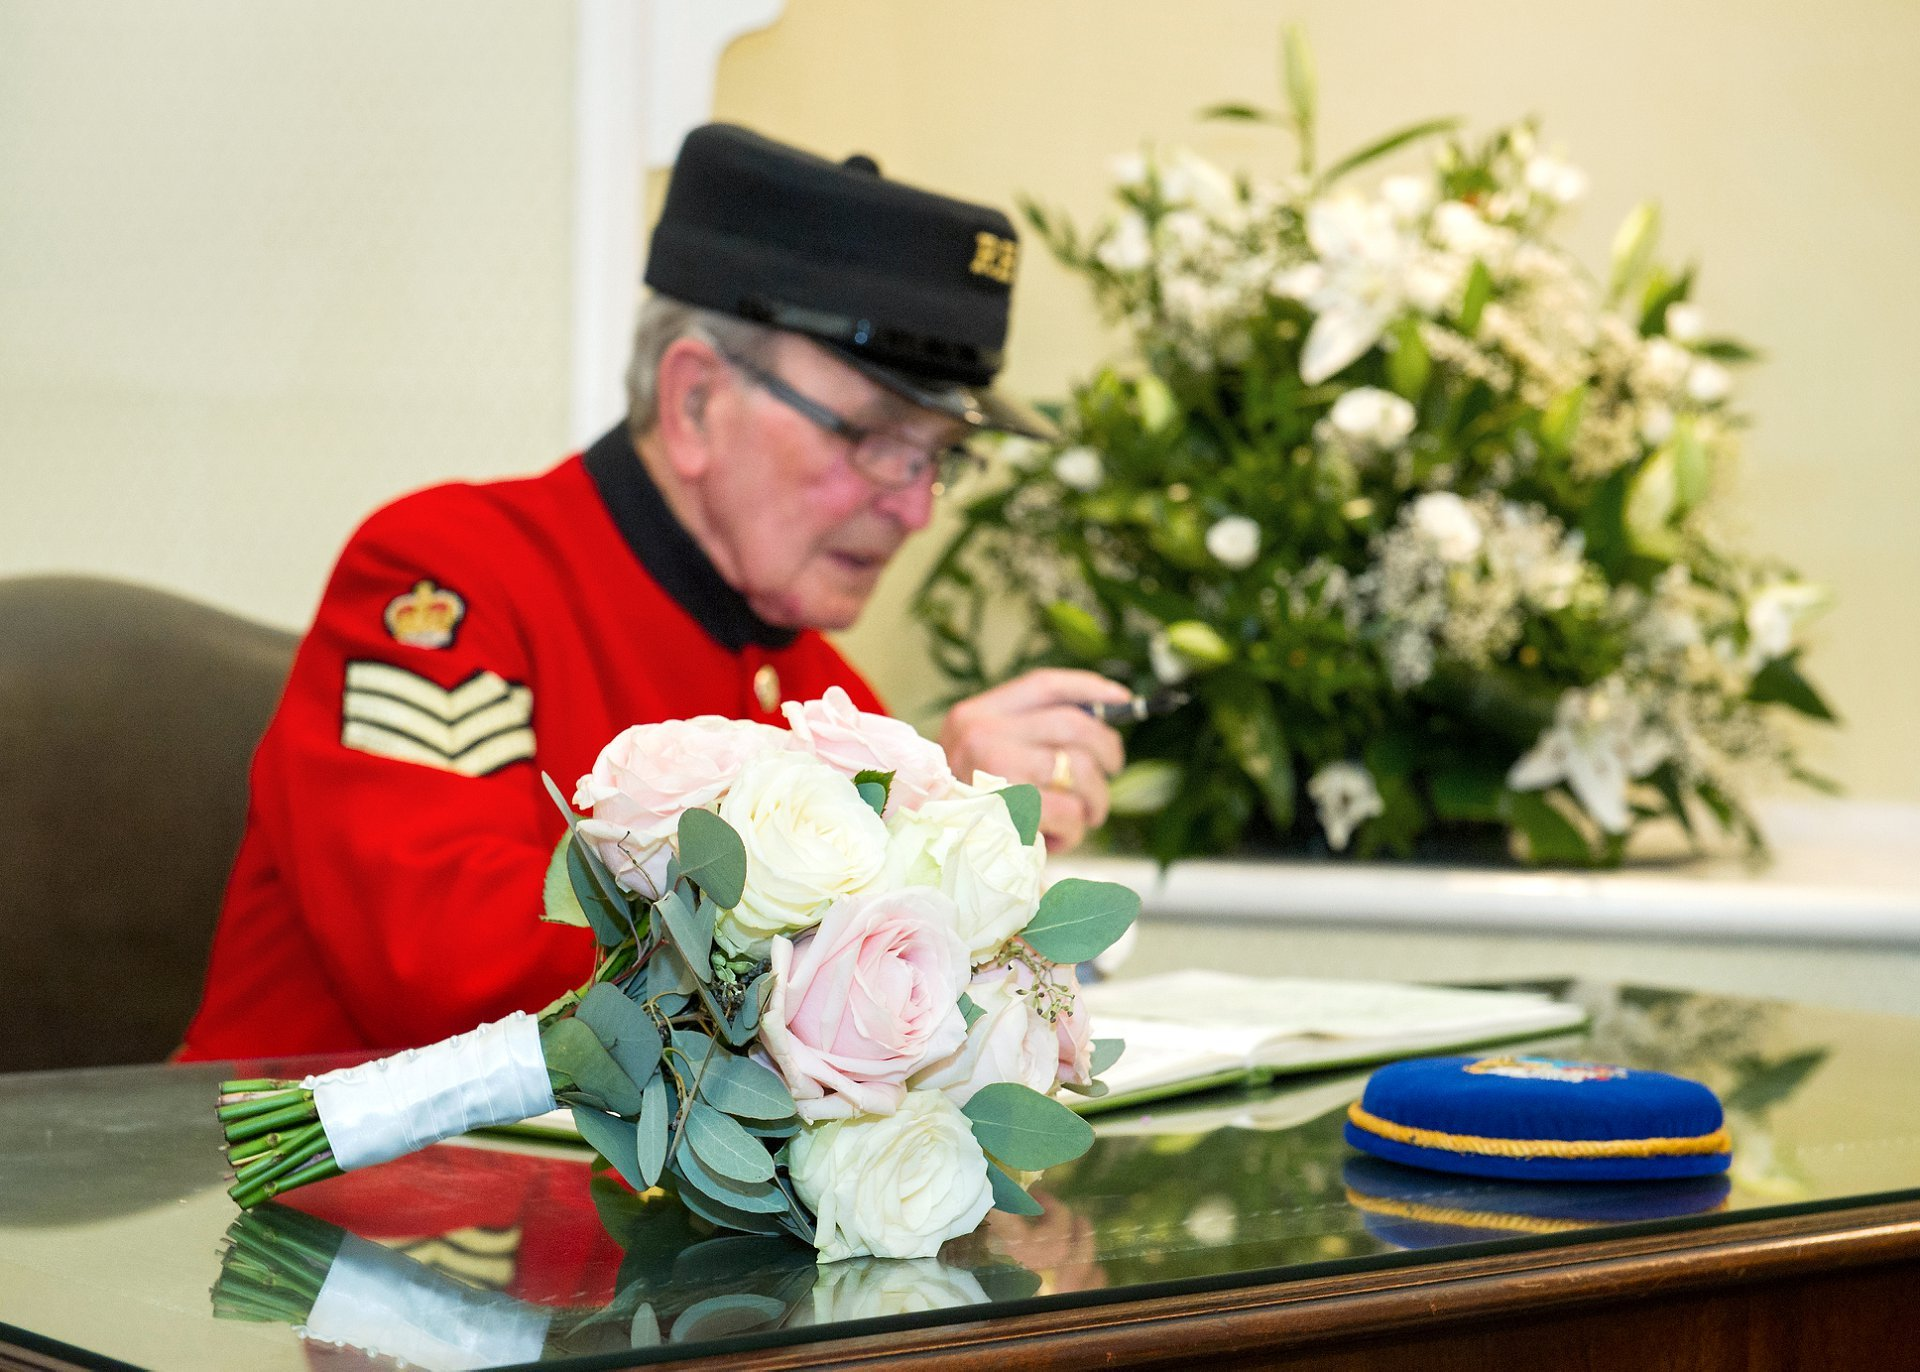 Chelsea Pensioner Walter signs the register as a witness with teh brides rose bouquet in the foregorund